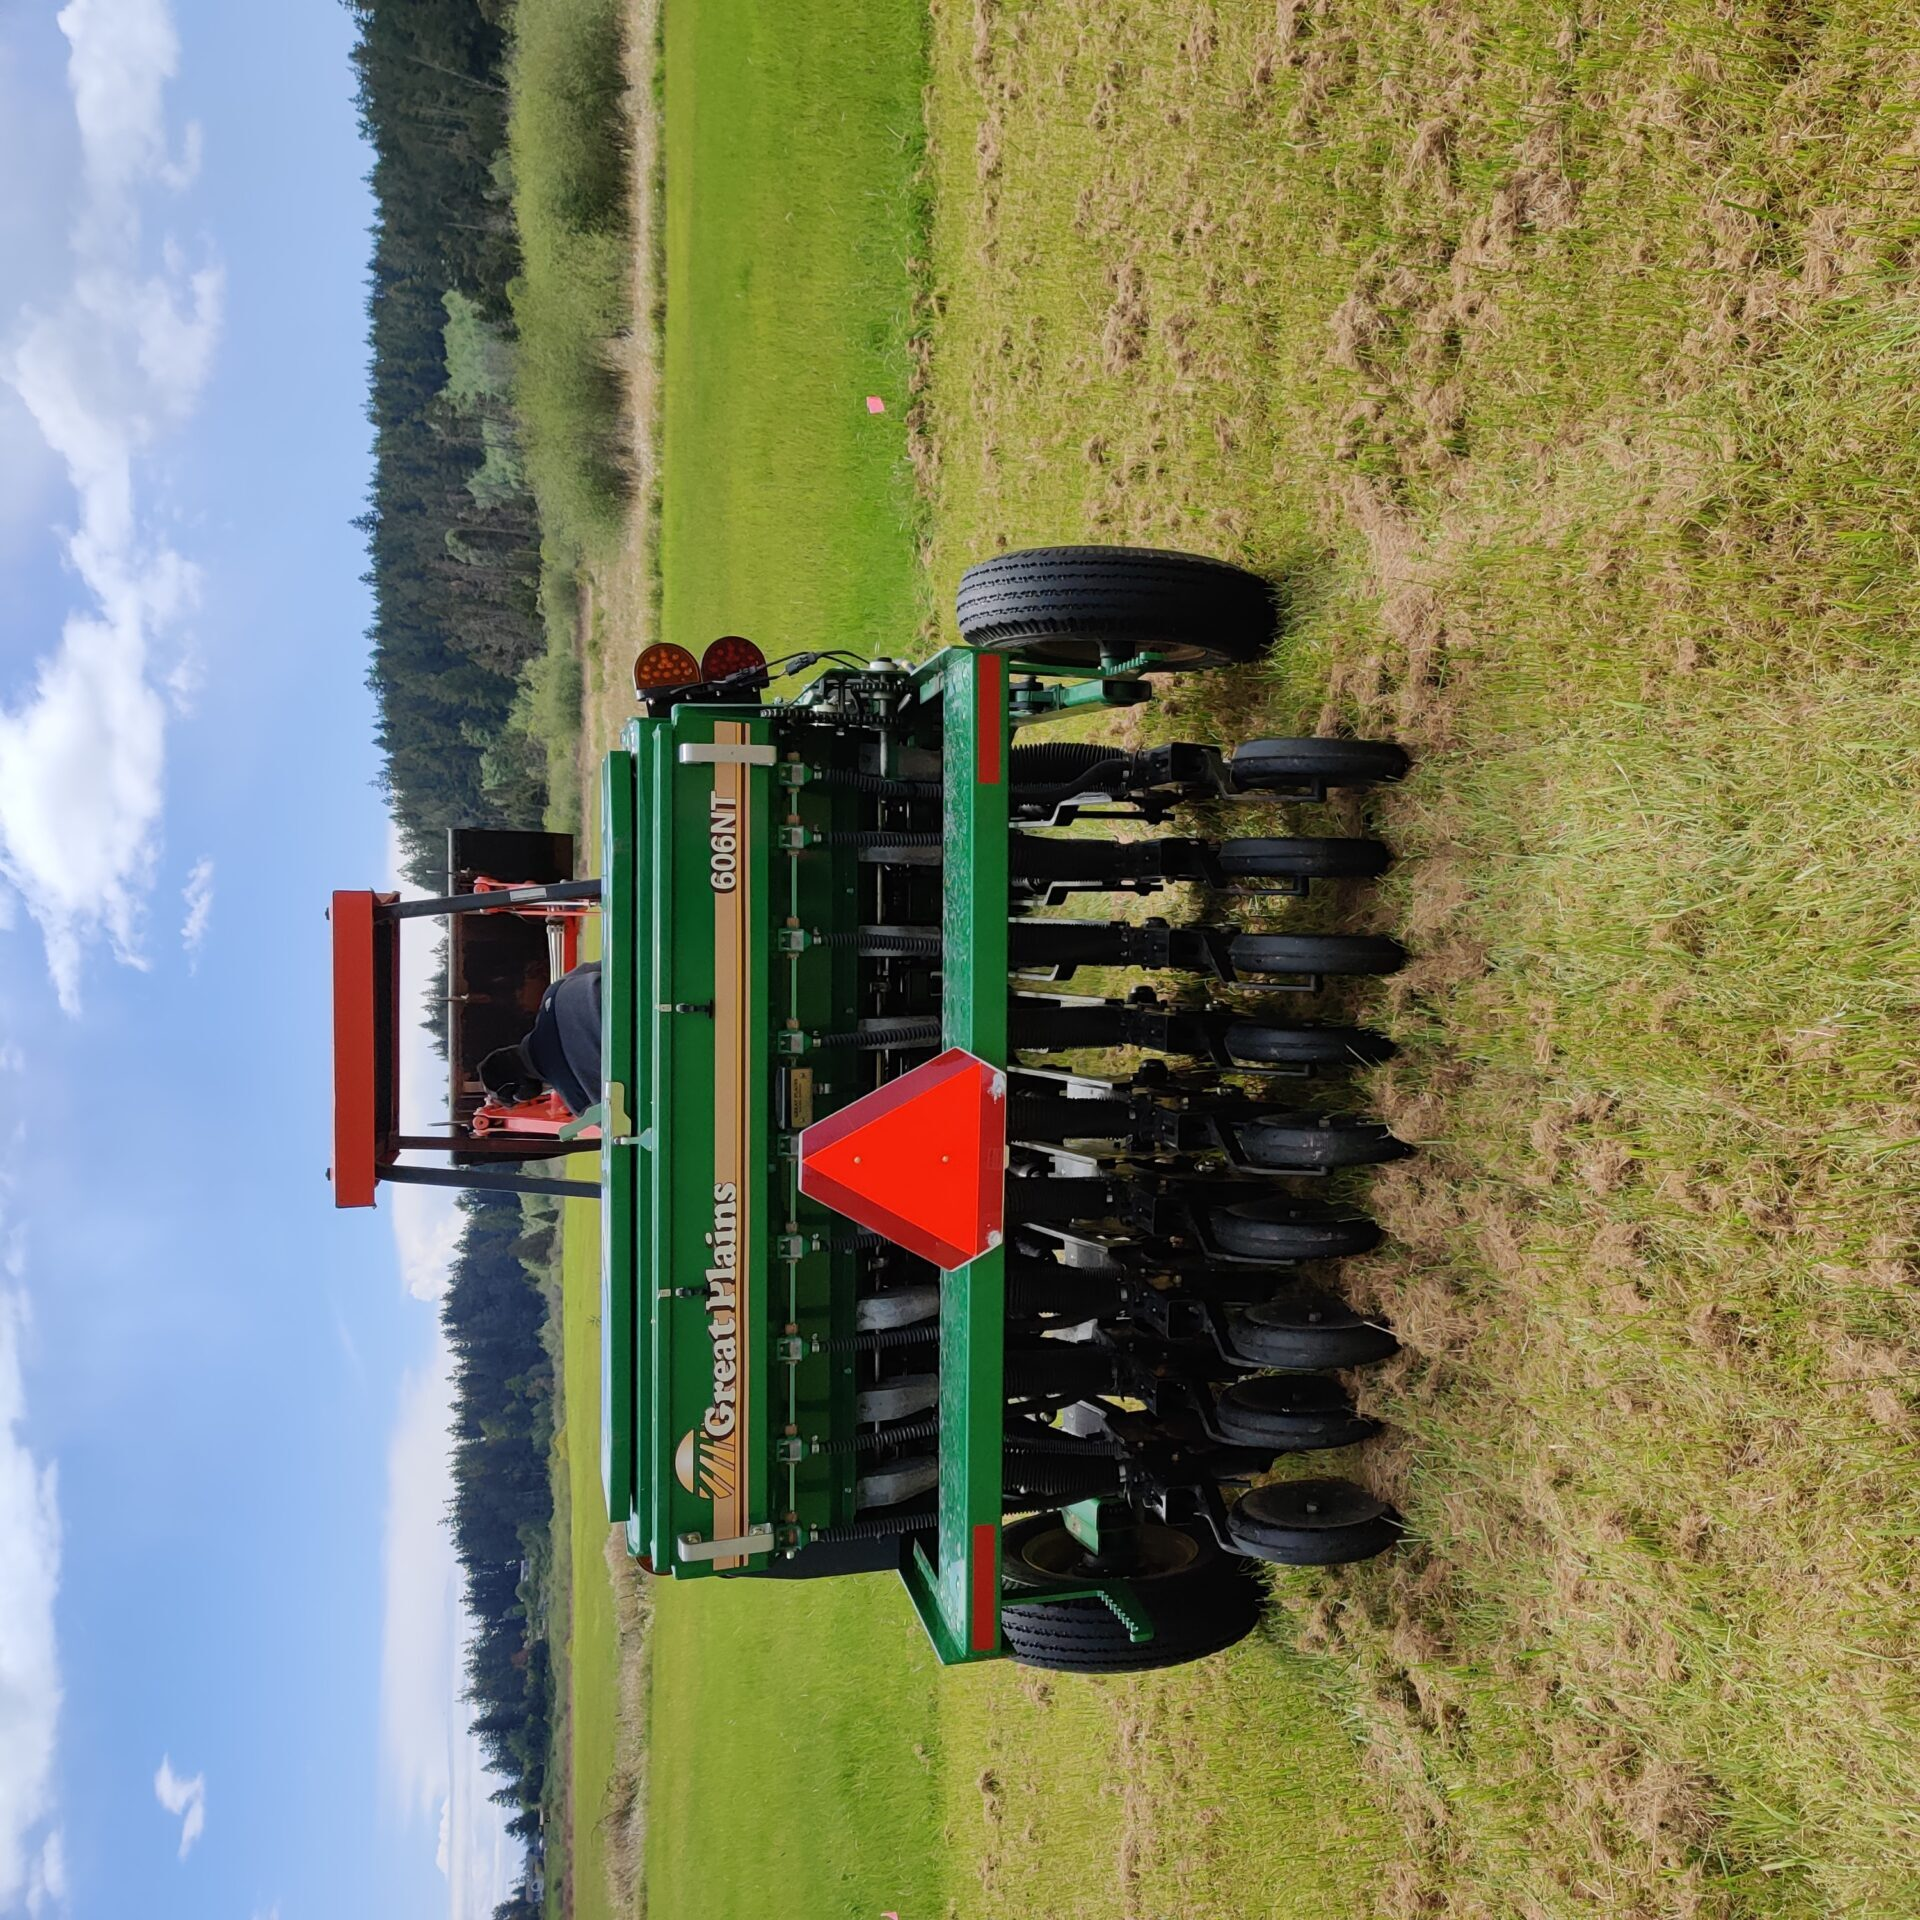 rear of no-till drill parked at the end of a freshly planted row in a pasture